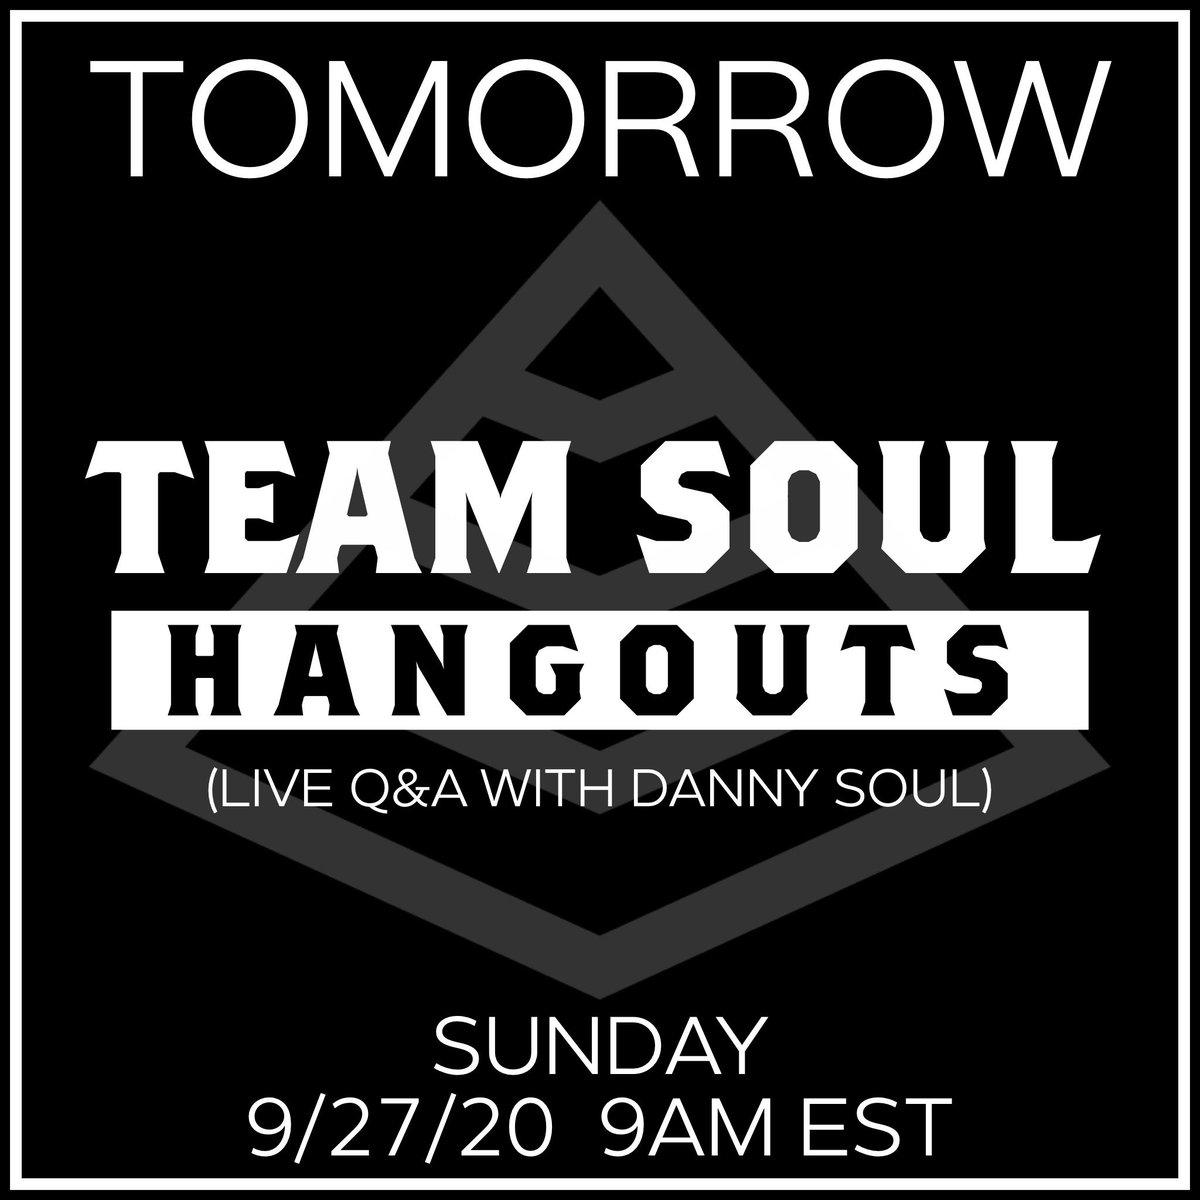 @teamsoulmiami  Hangouts (Live Q&A with Danny Soul)  Join us for our next @teamsoulmiami  IG Live Hangout Session TOMORROW (9/27/20) at 9am EST. #teamSOUL #RunWithUs #CrossFit https://t.co/eiiaDYskUy